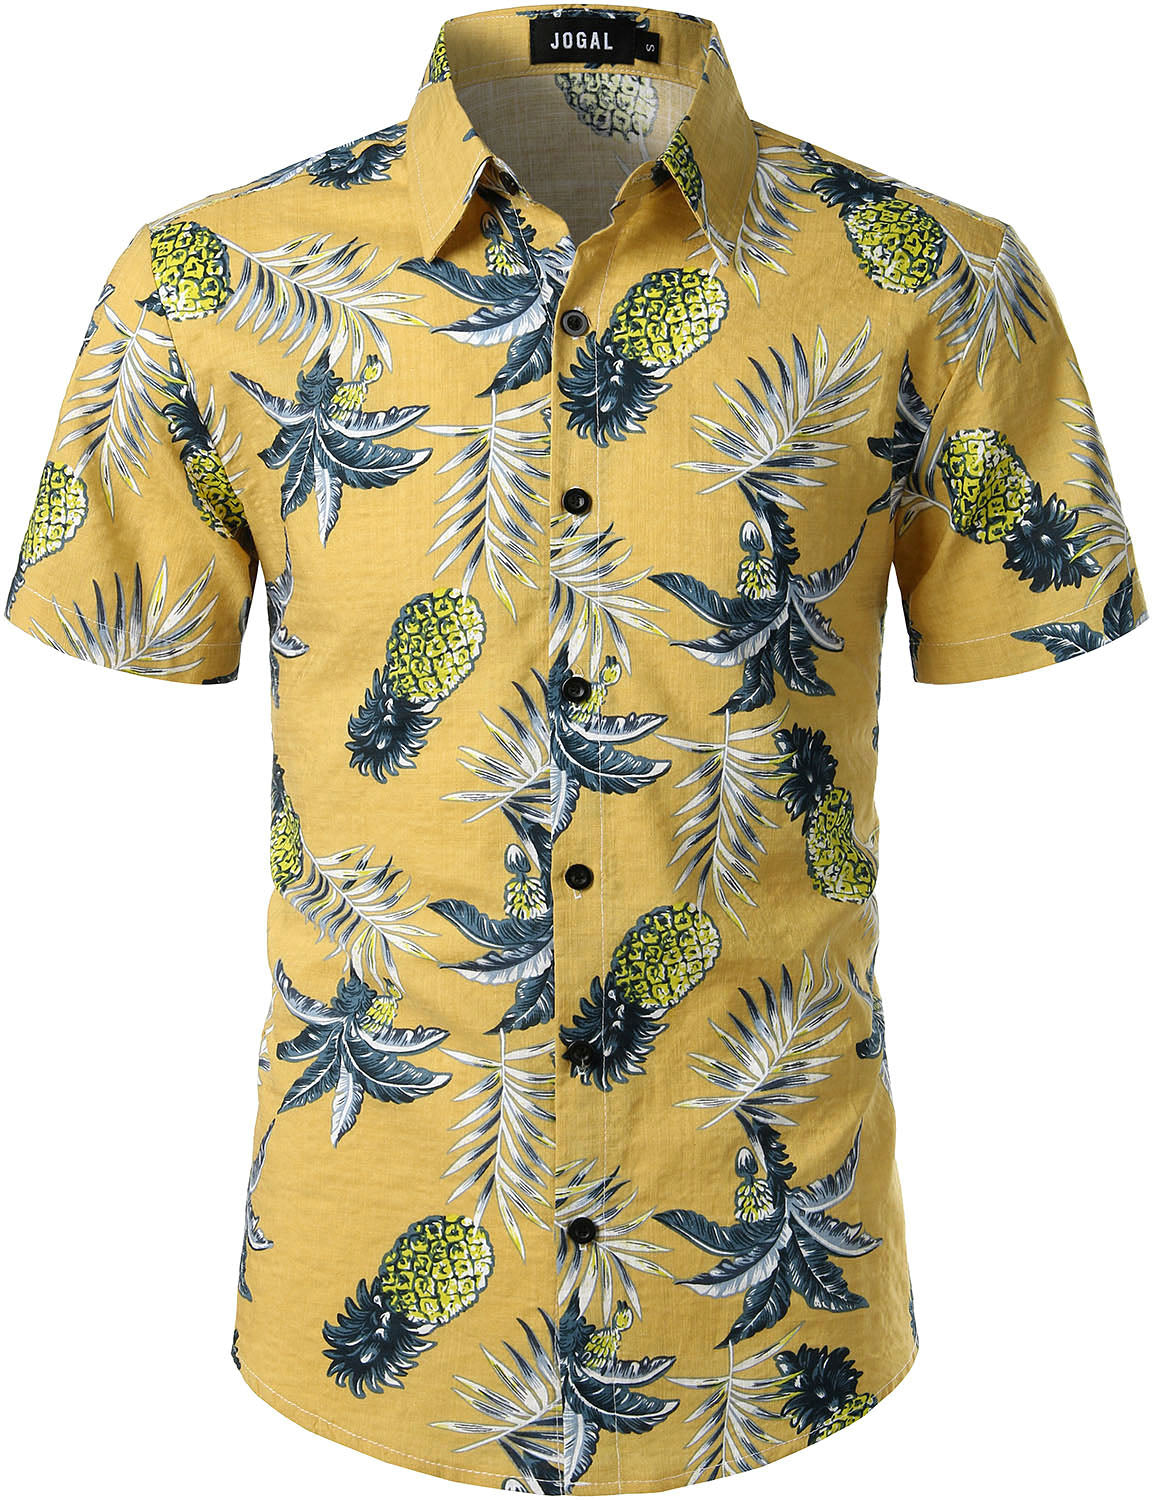 JOGAL Men's Cotton Button Down Short Sleeve Hawaiian Shirt (Pineapple)